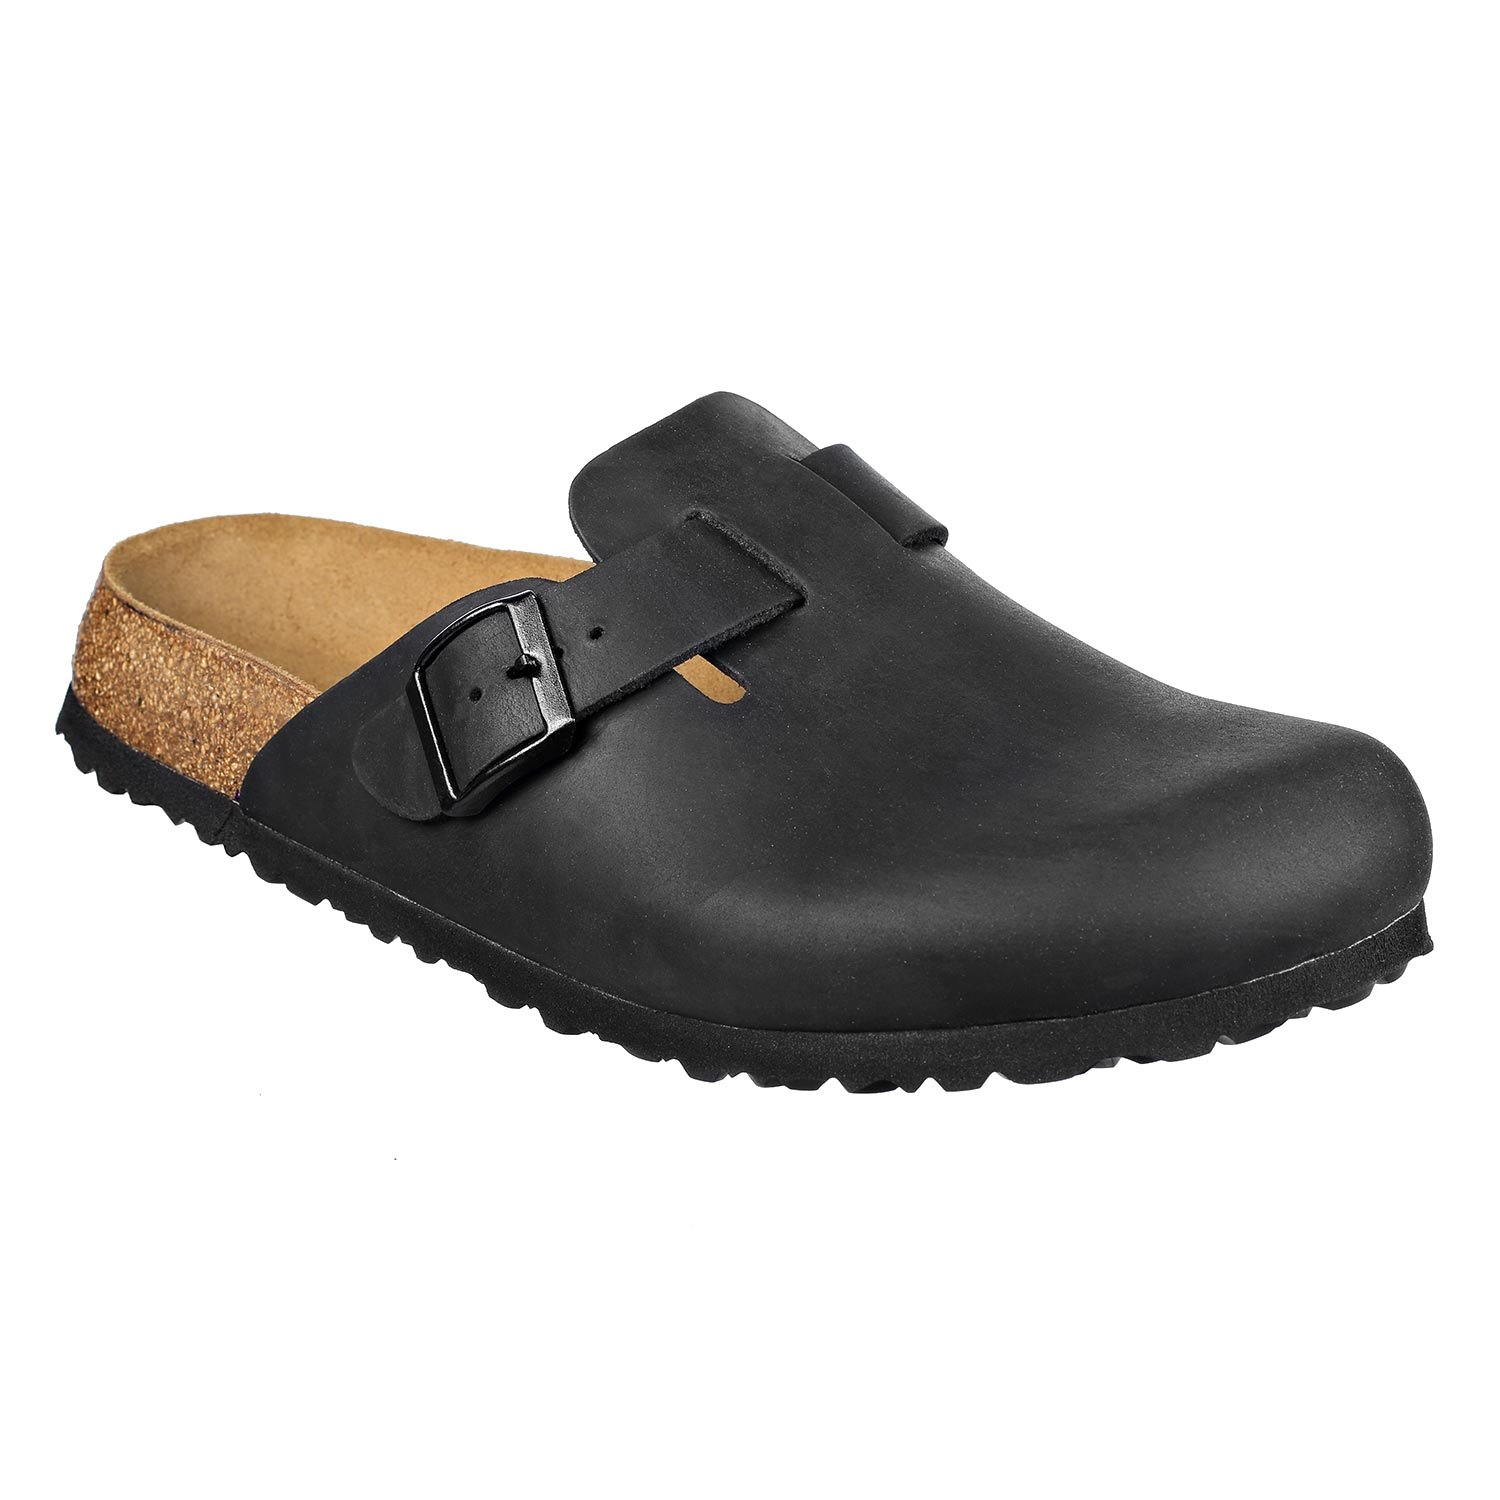 Soft Slippers Clogs Shoes Leatherette Narrow - Mens and Womens